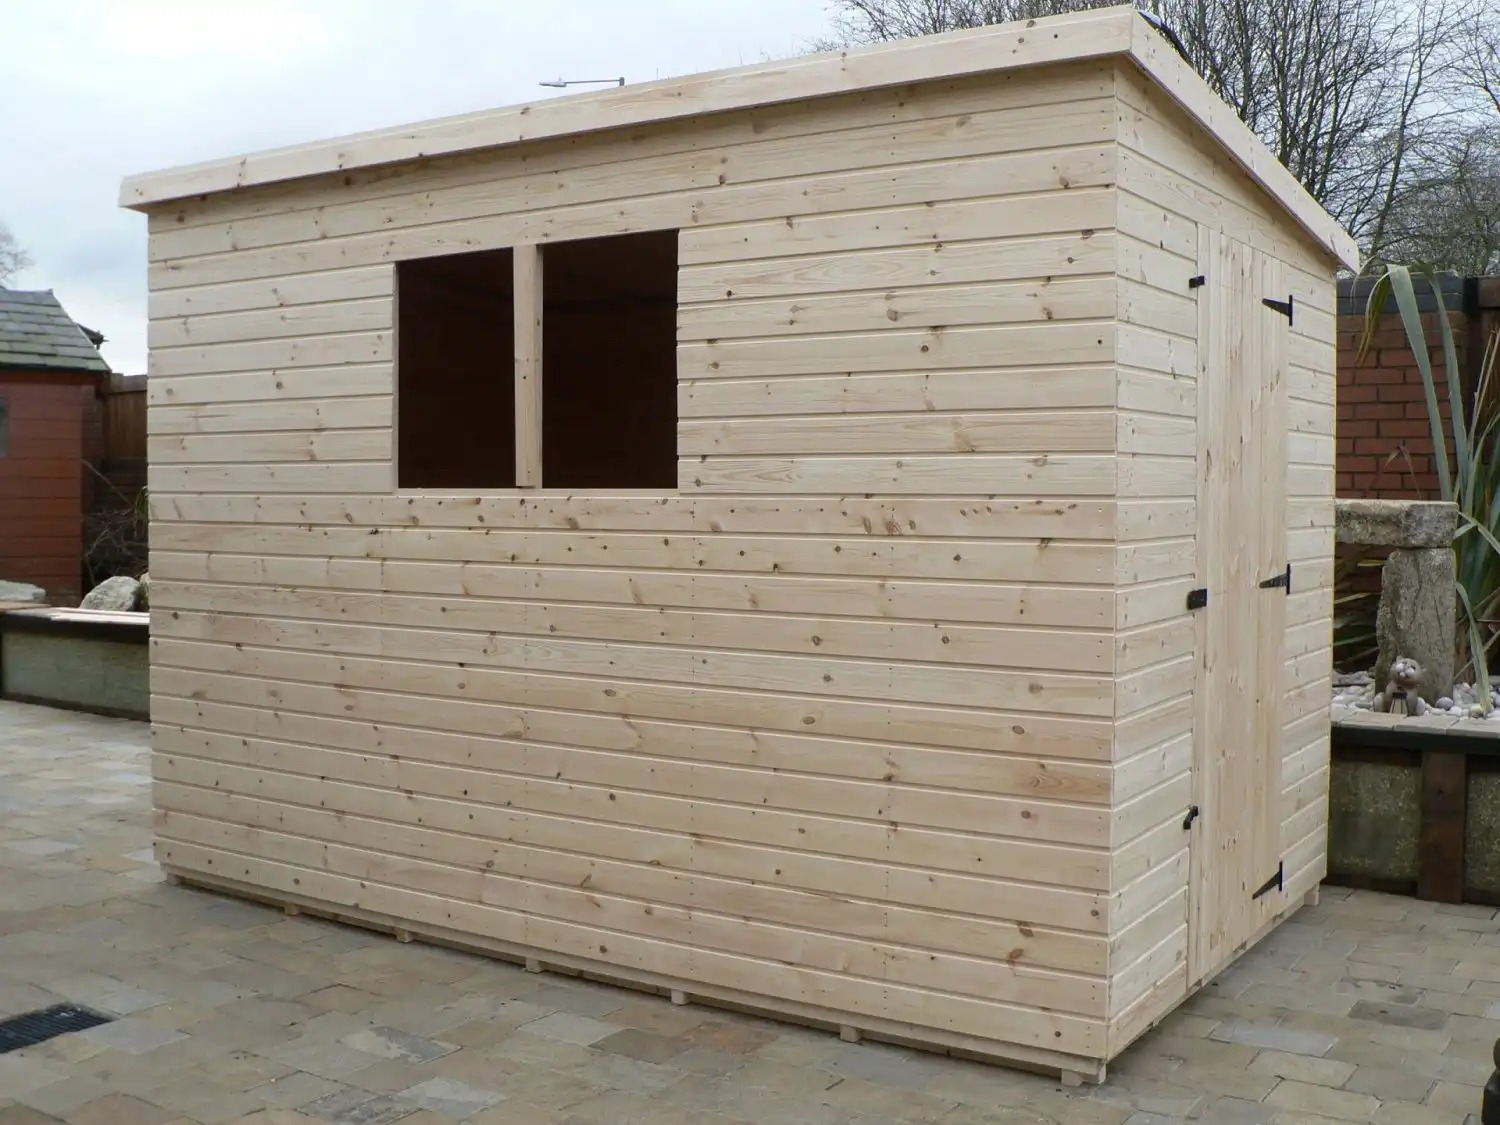 10' X 6' Pent Shed Full Size Windows